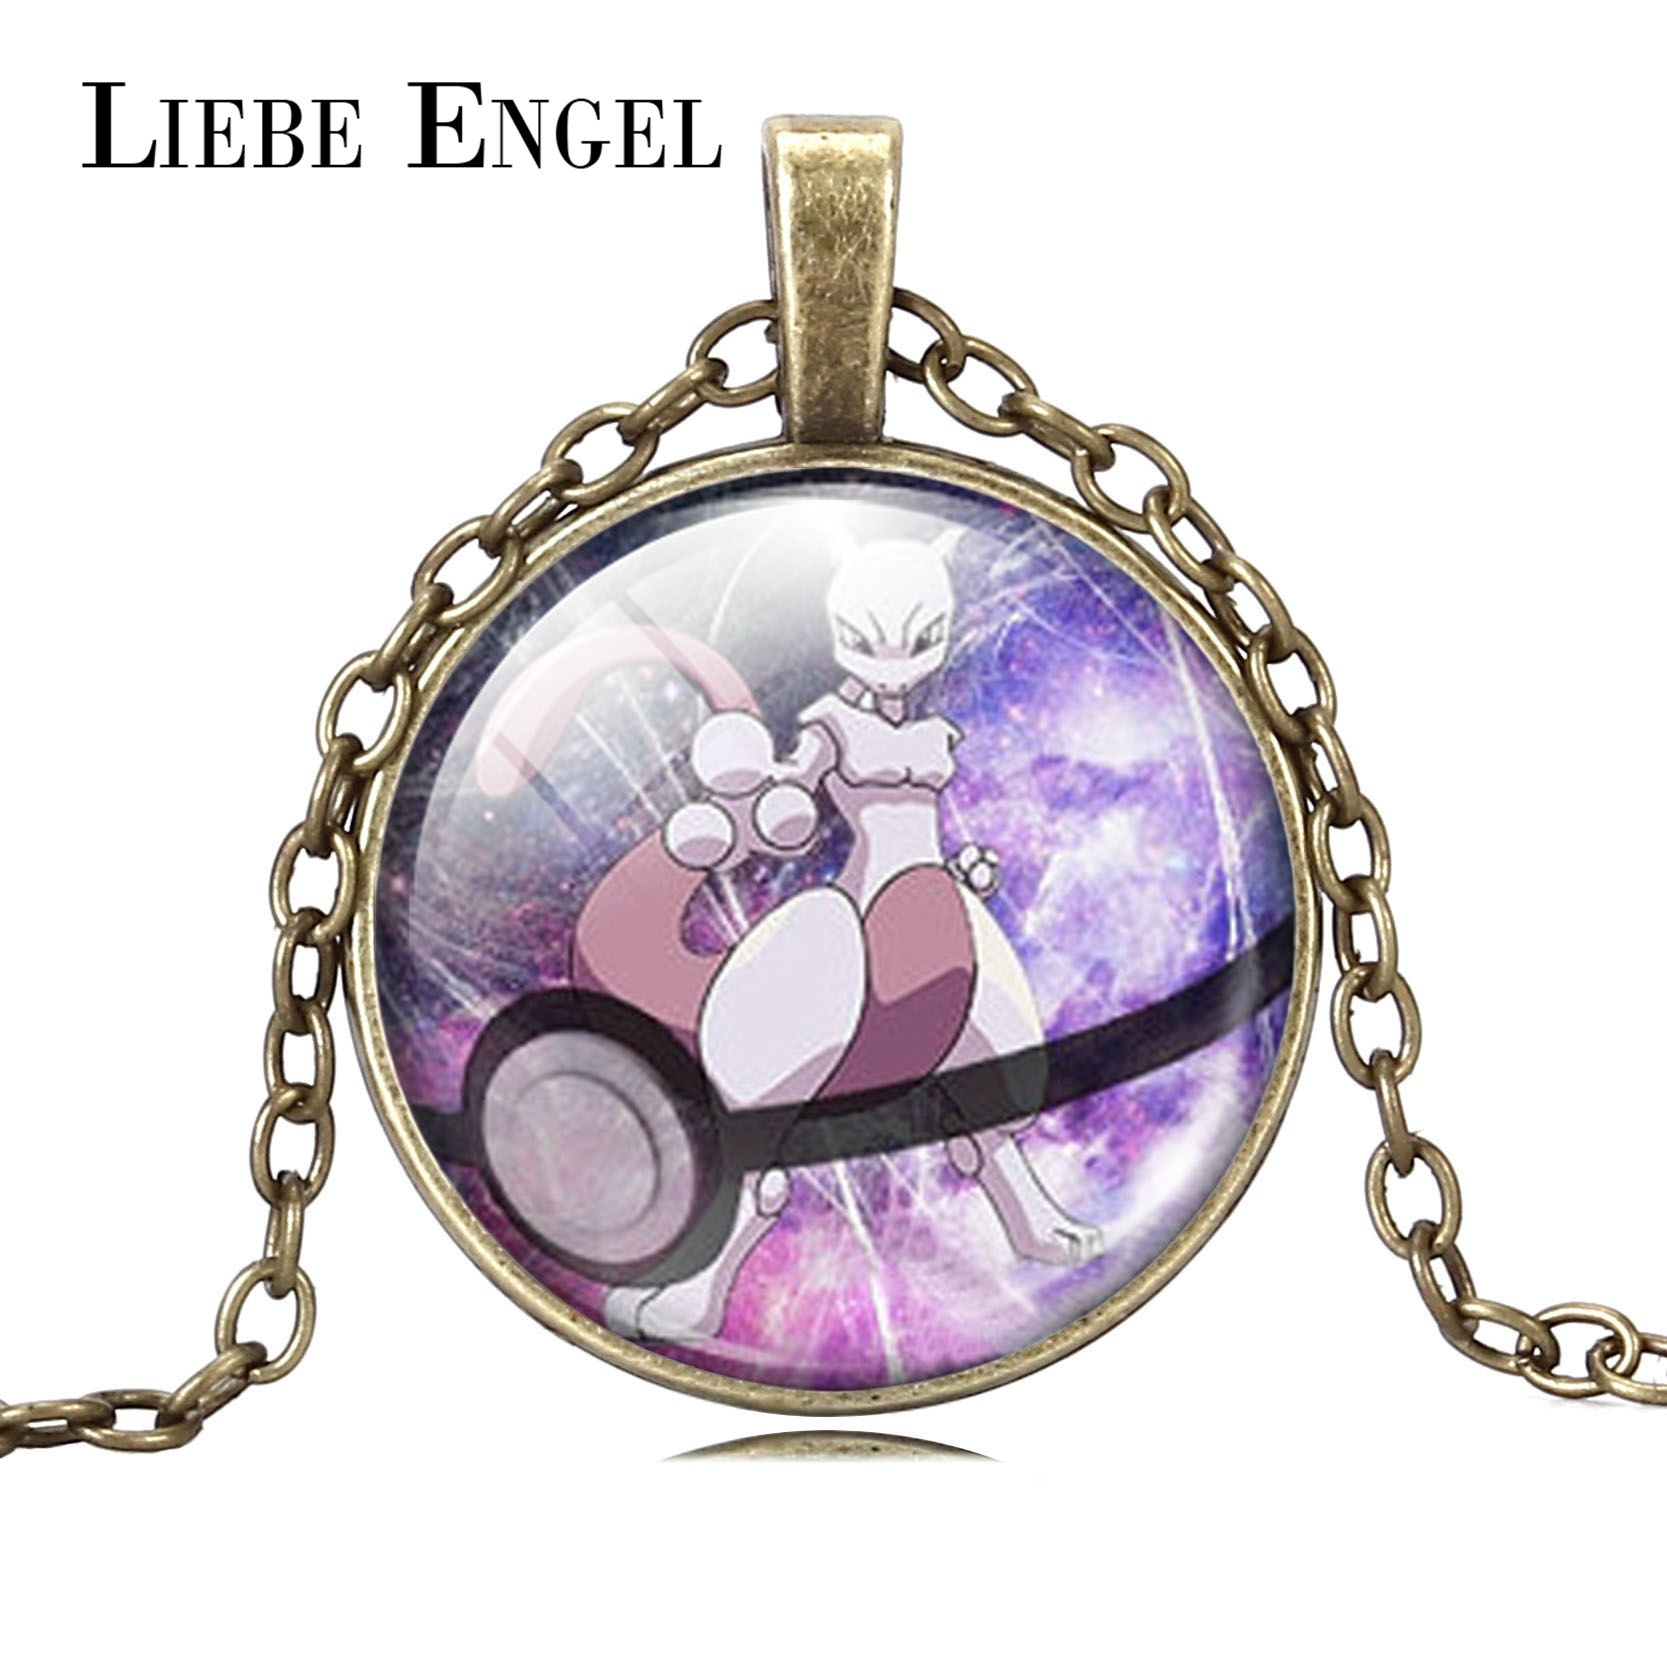 Find More Pendant Necklaces Information about LIEBE ENGEL Wholesale Pokeball Mewtwo Pokemon Necklace Glass Cabochon Pendant Necklace Fashion Jewelry For Women And Men Gift,High Quality necklace costume jewelry,China jewelry necklace holder Suppliers, Cheap necklace dragon from LIEBE ENGEL Official Store on Aliexpress.com